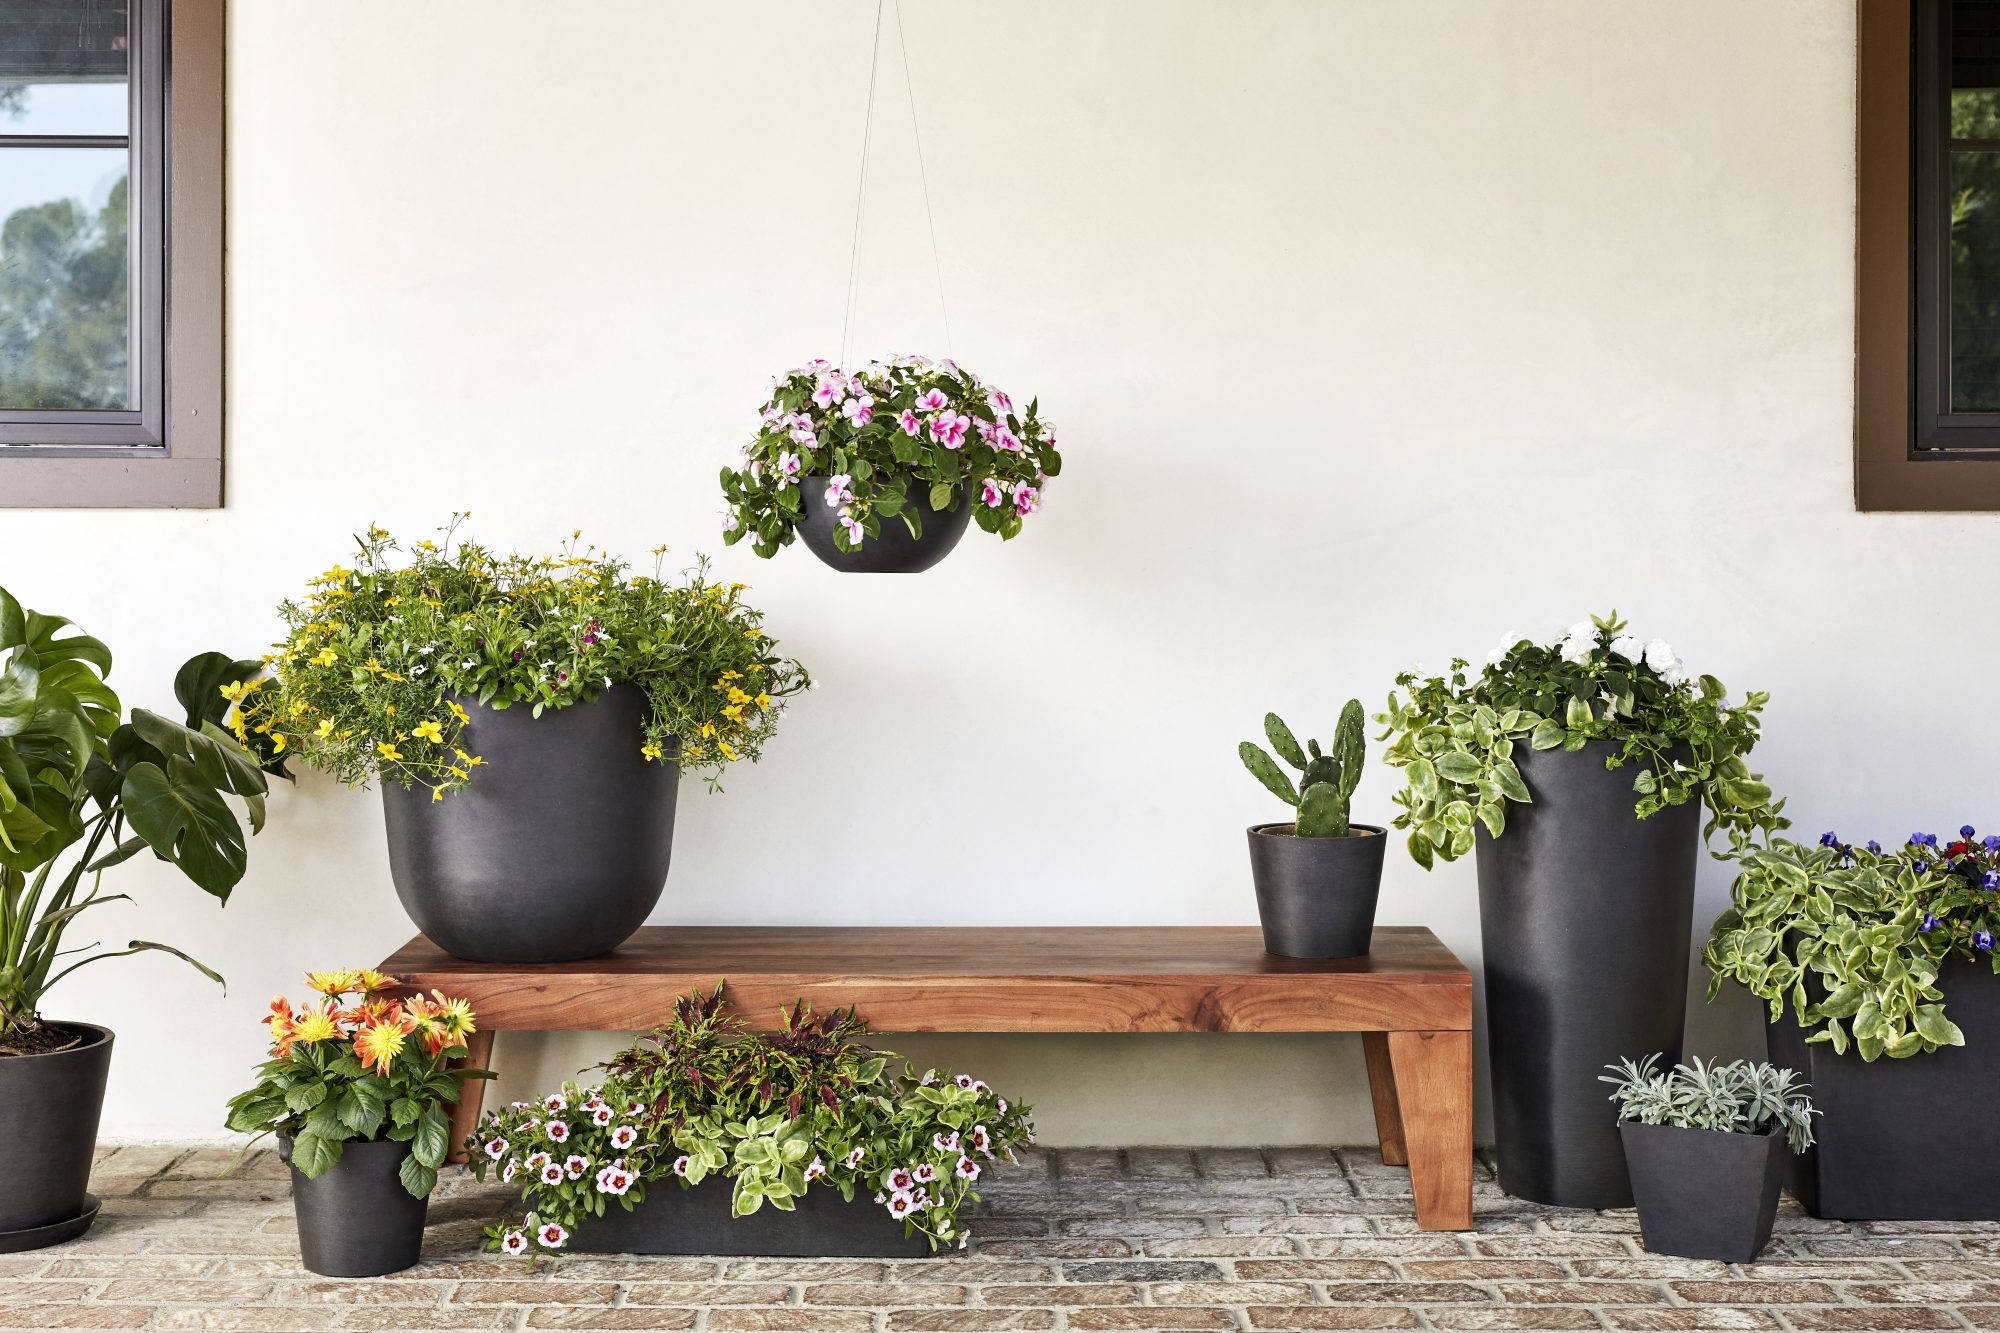 pots of flowers on a bench